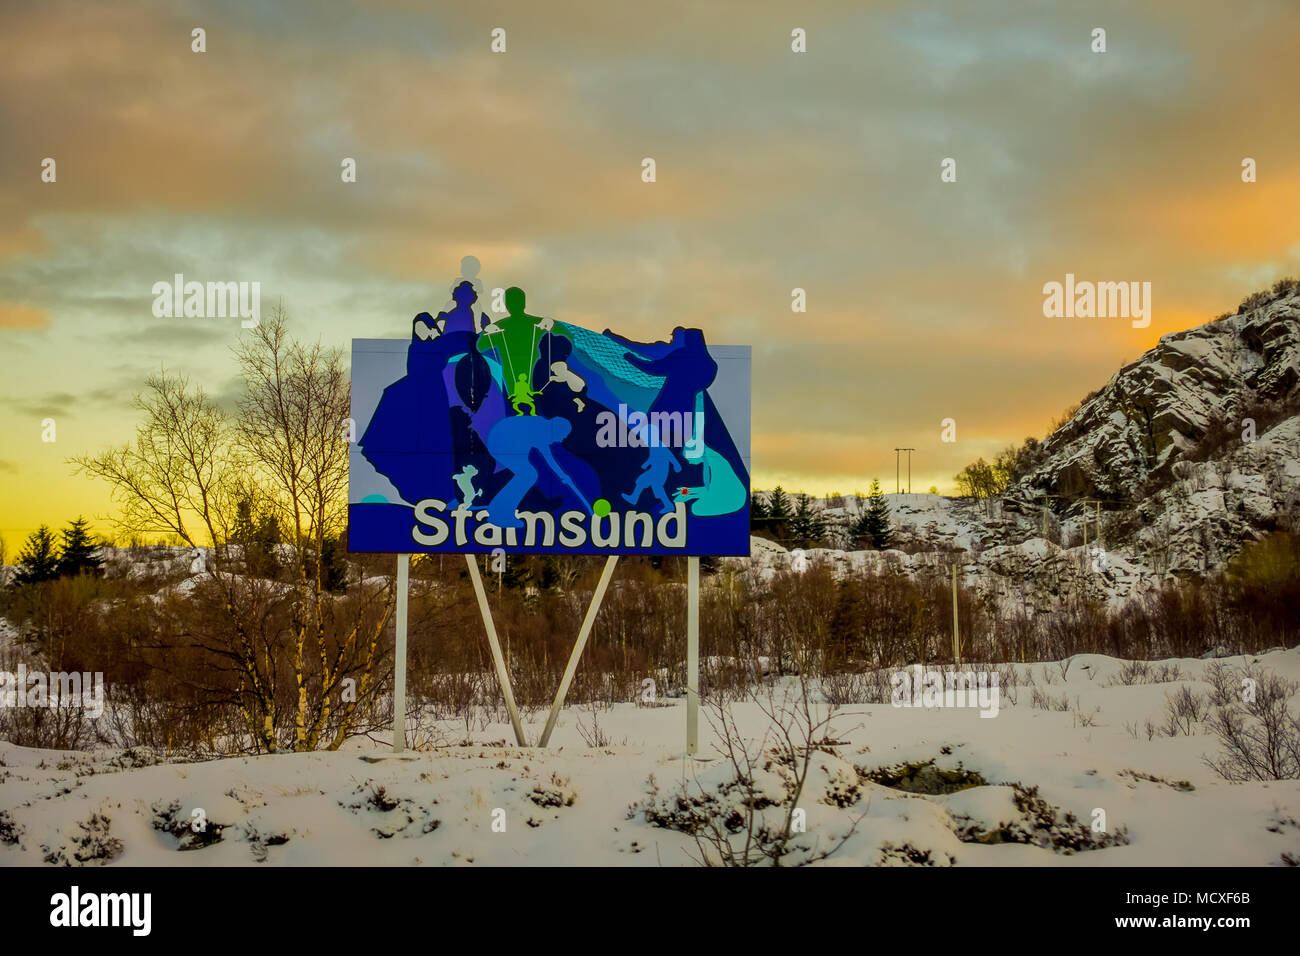 STAMSUND, LOFOTEN, NORWAY, APRIL, 09, 2018: Outdoor view of huge placard of diferent images in a gorgeous sunset background surropunding of nature in Lofoten island - Stock Image